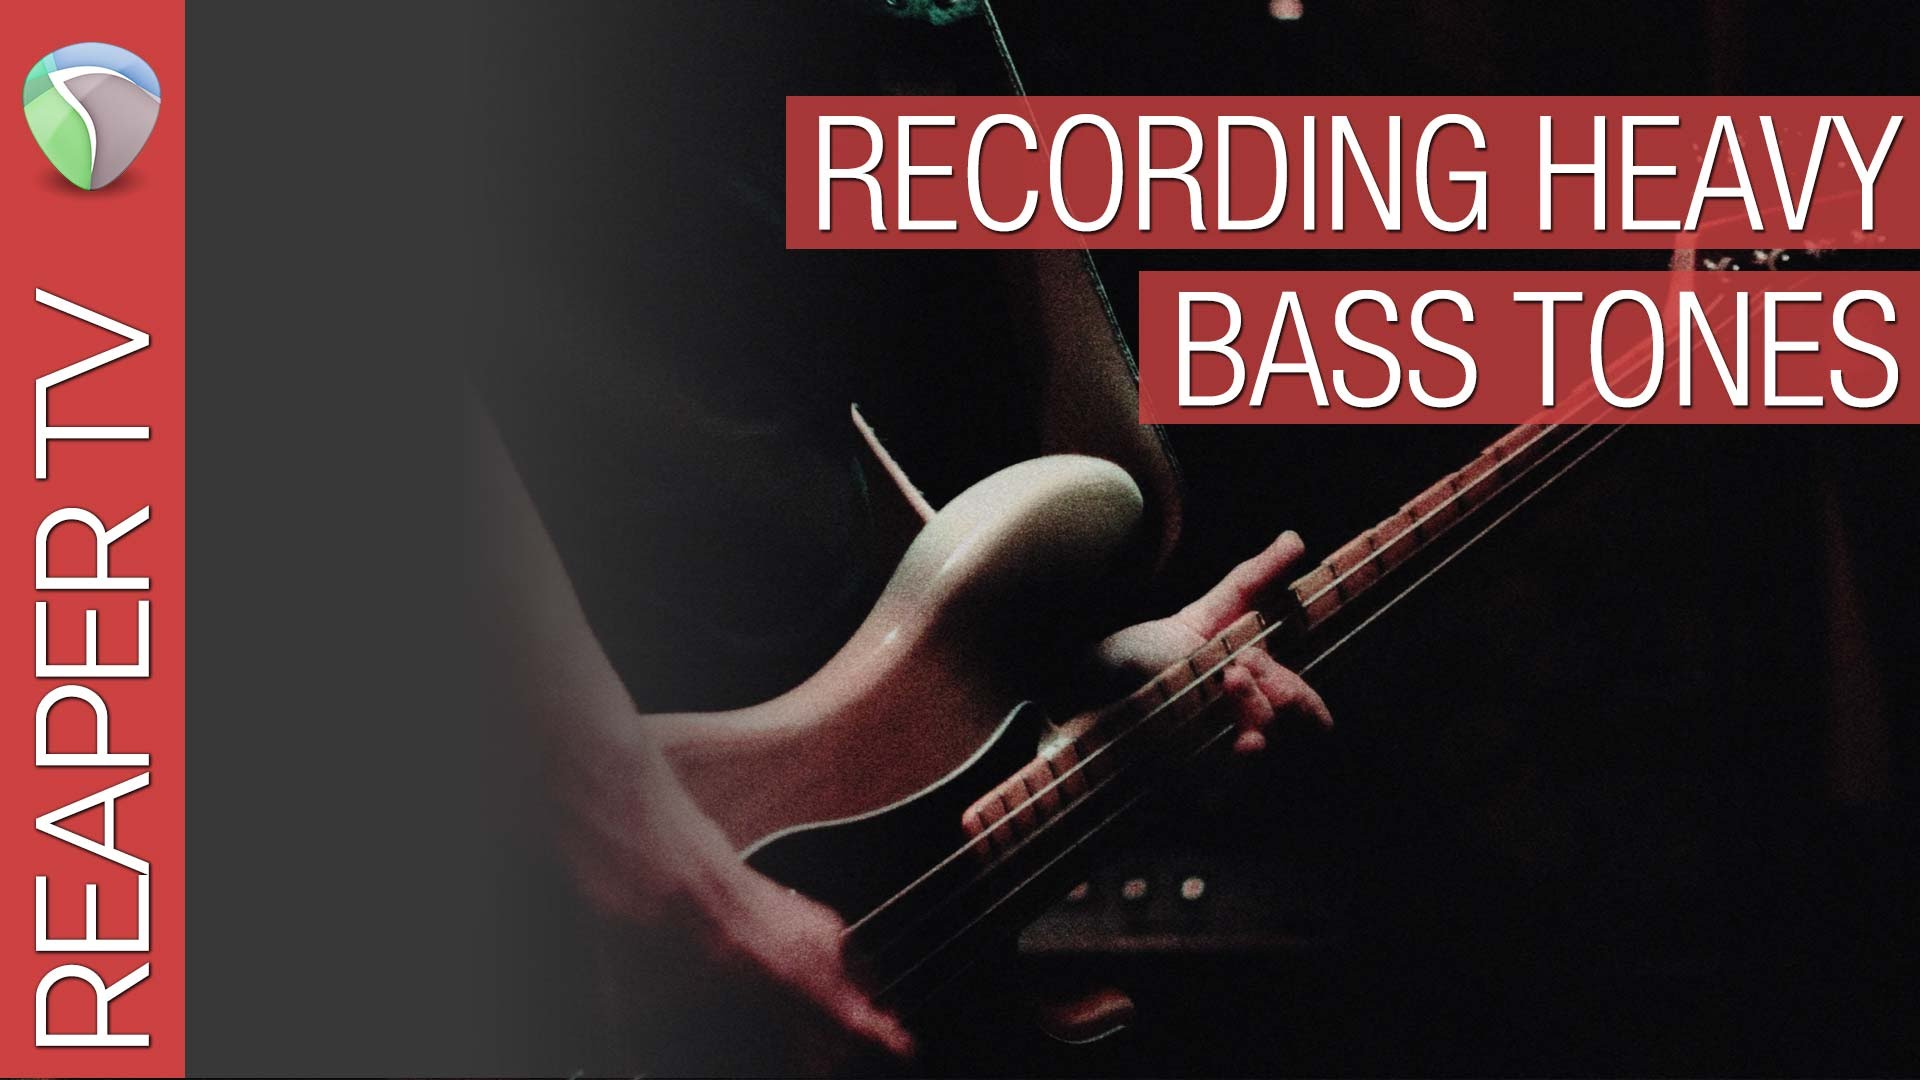 Recording & Mixing a Heavy Bass Tone